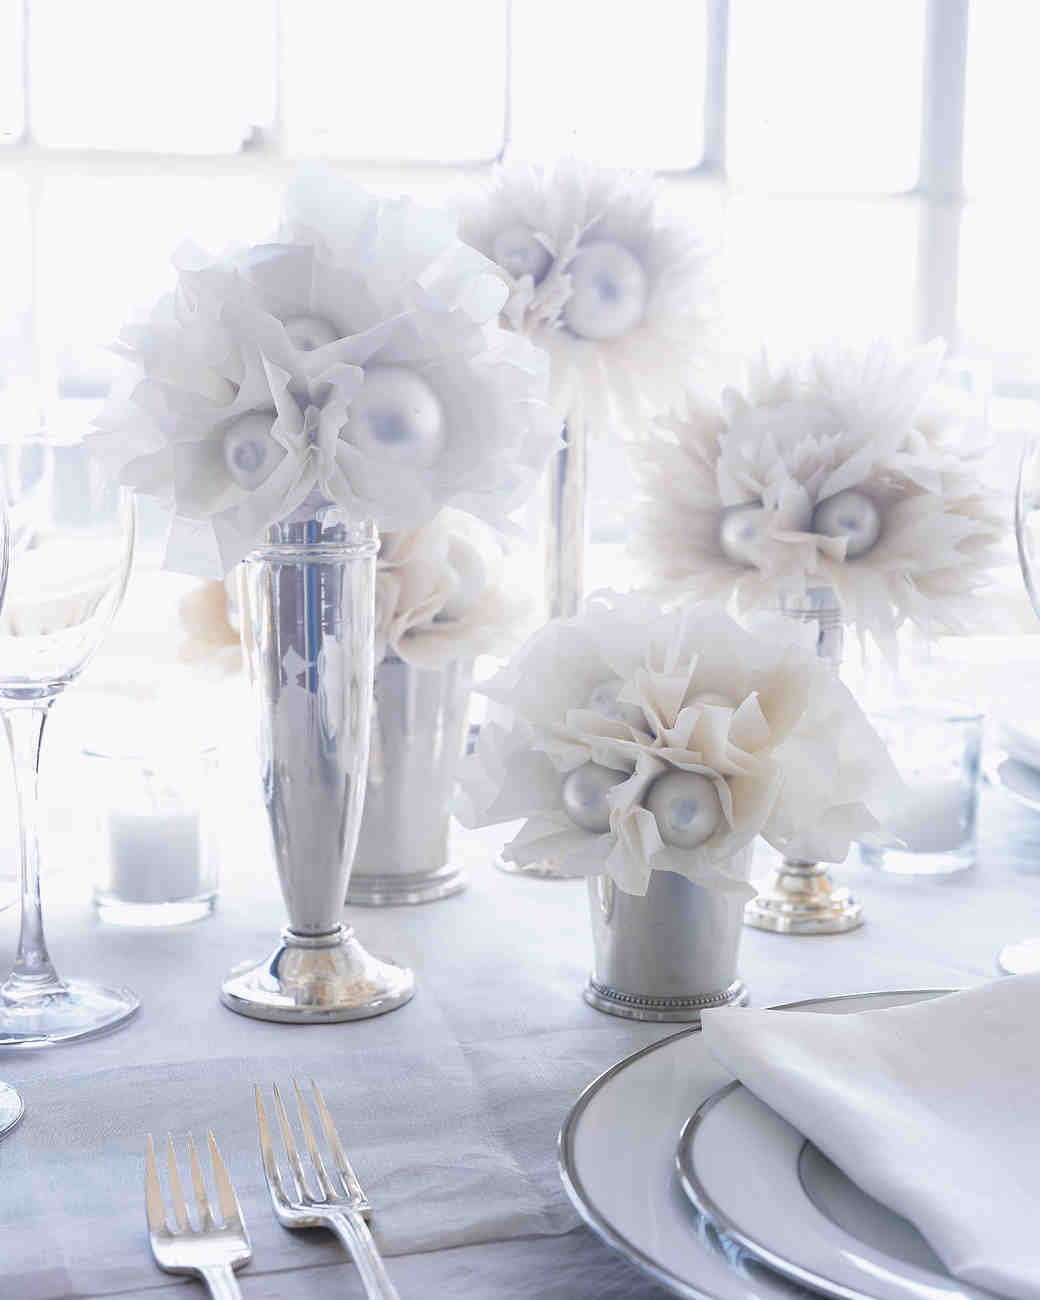 & 23 DIY Wedding Centerpieces We Love | Martha Stewart Weddings